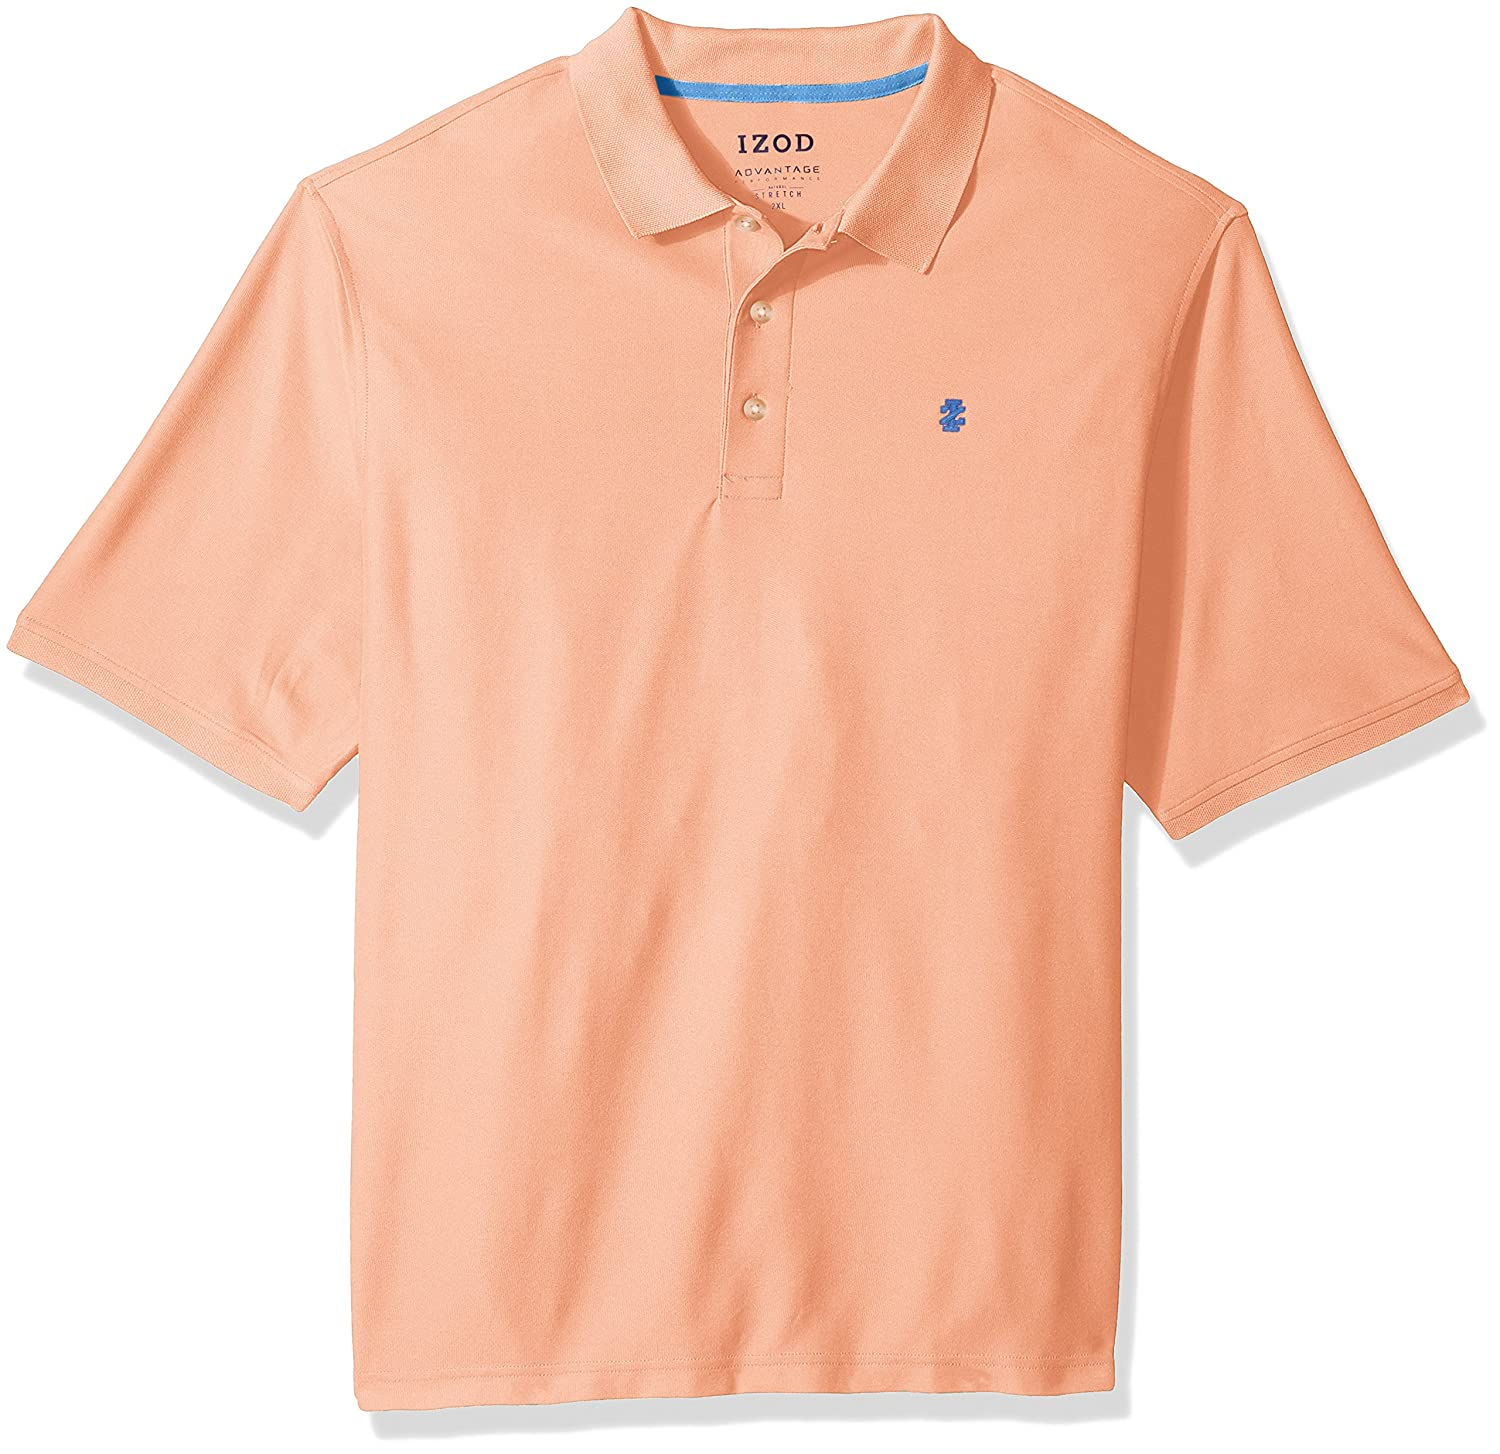 IZOD SHIRT メンズ B076MZ1GRY L|Papaya Punch Papaya Punch L